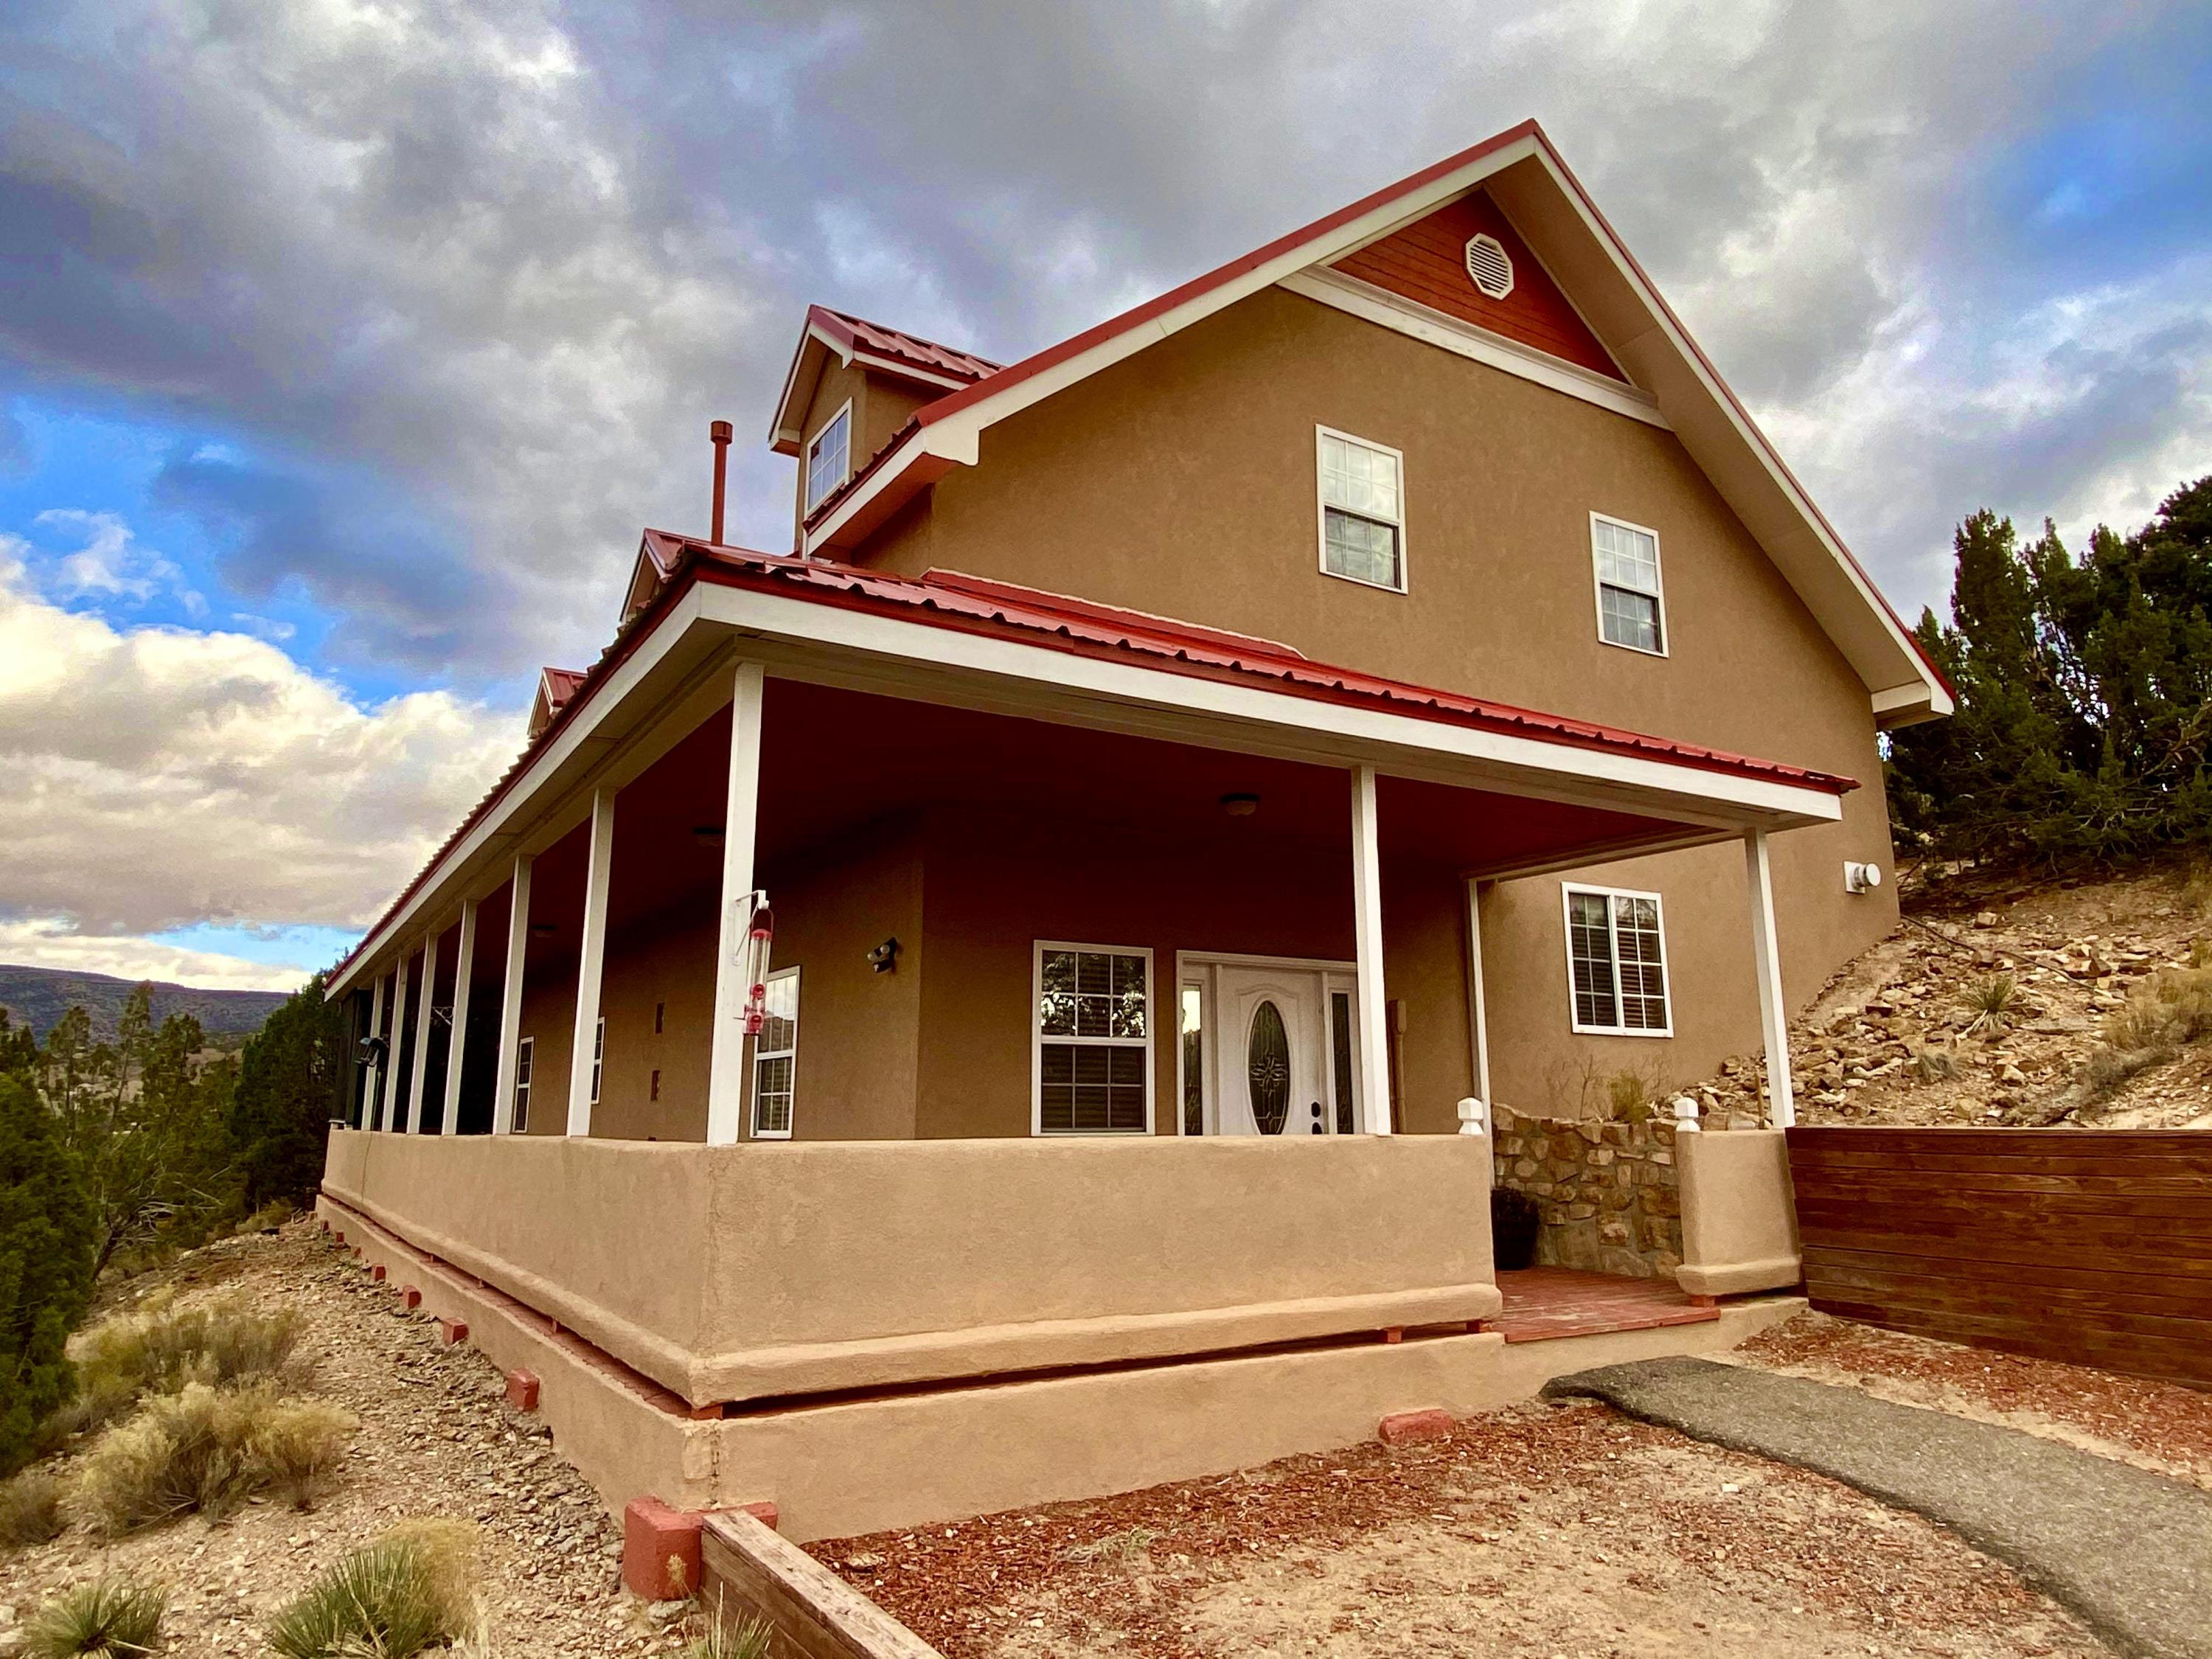 40 CAMINO DE LA BUENA VISTA ROAD, PLACITAS, NM 87043